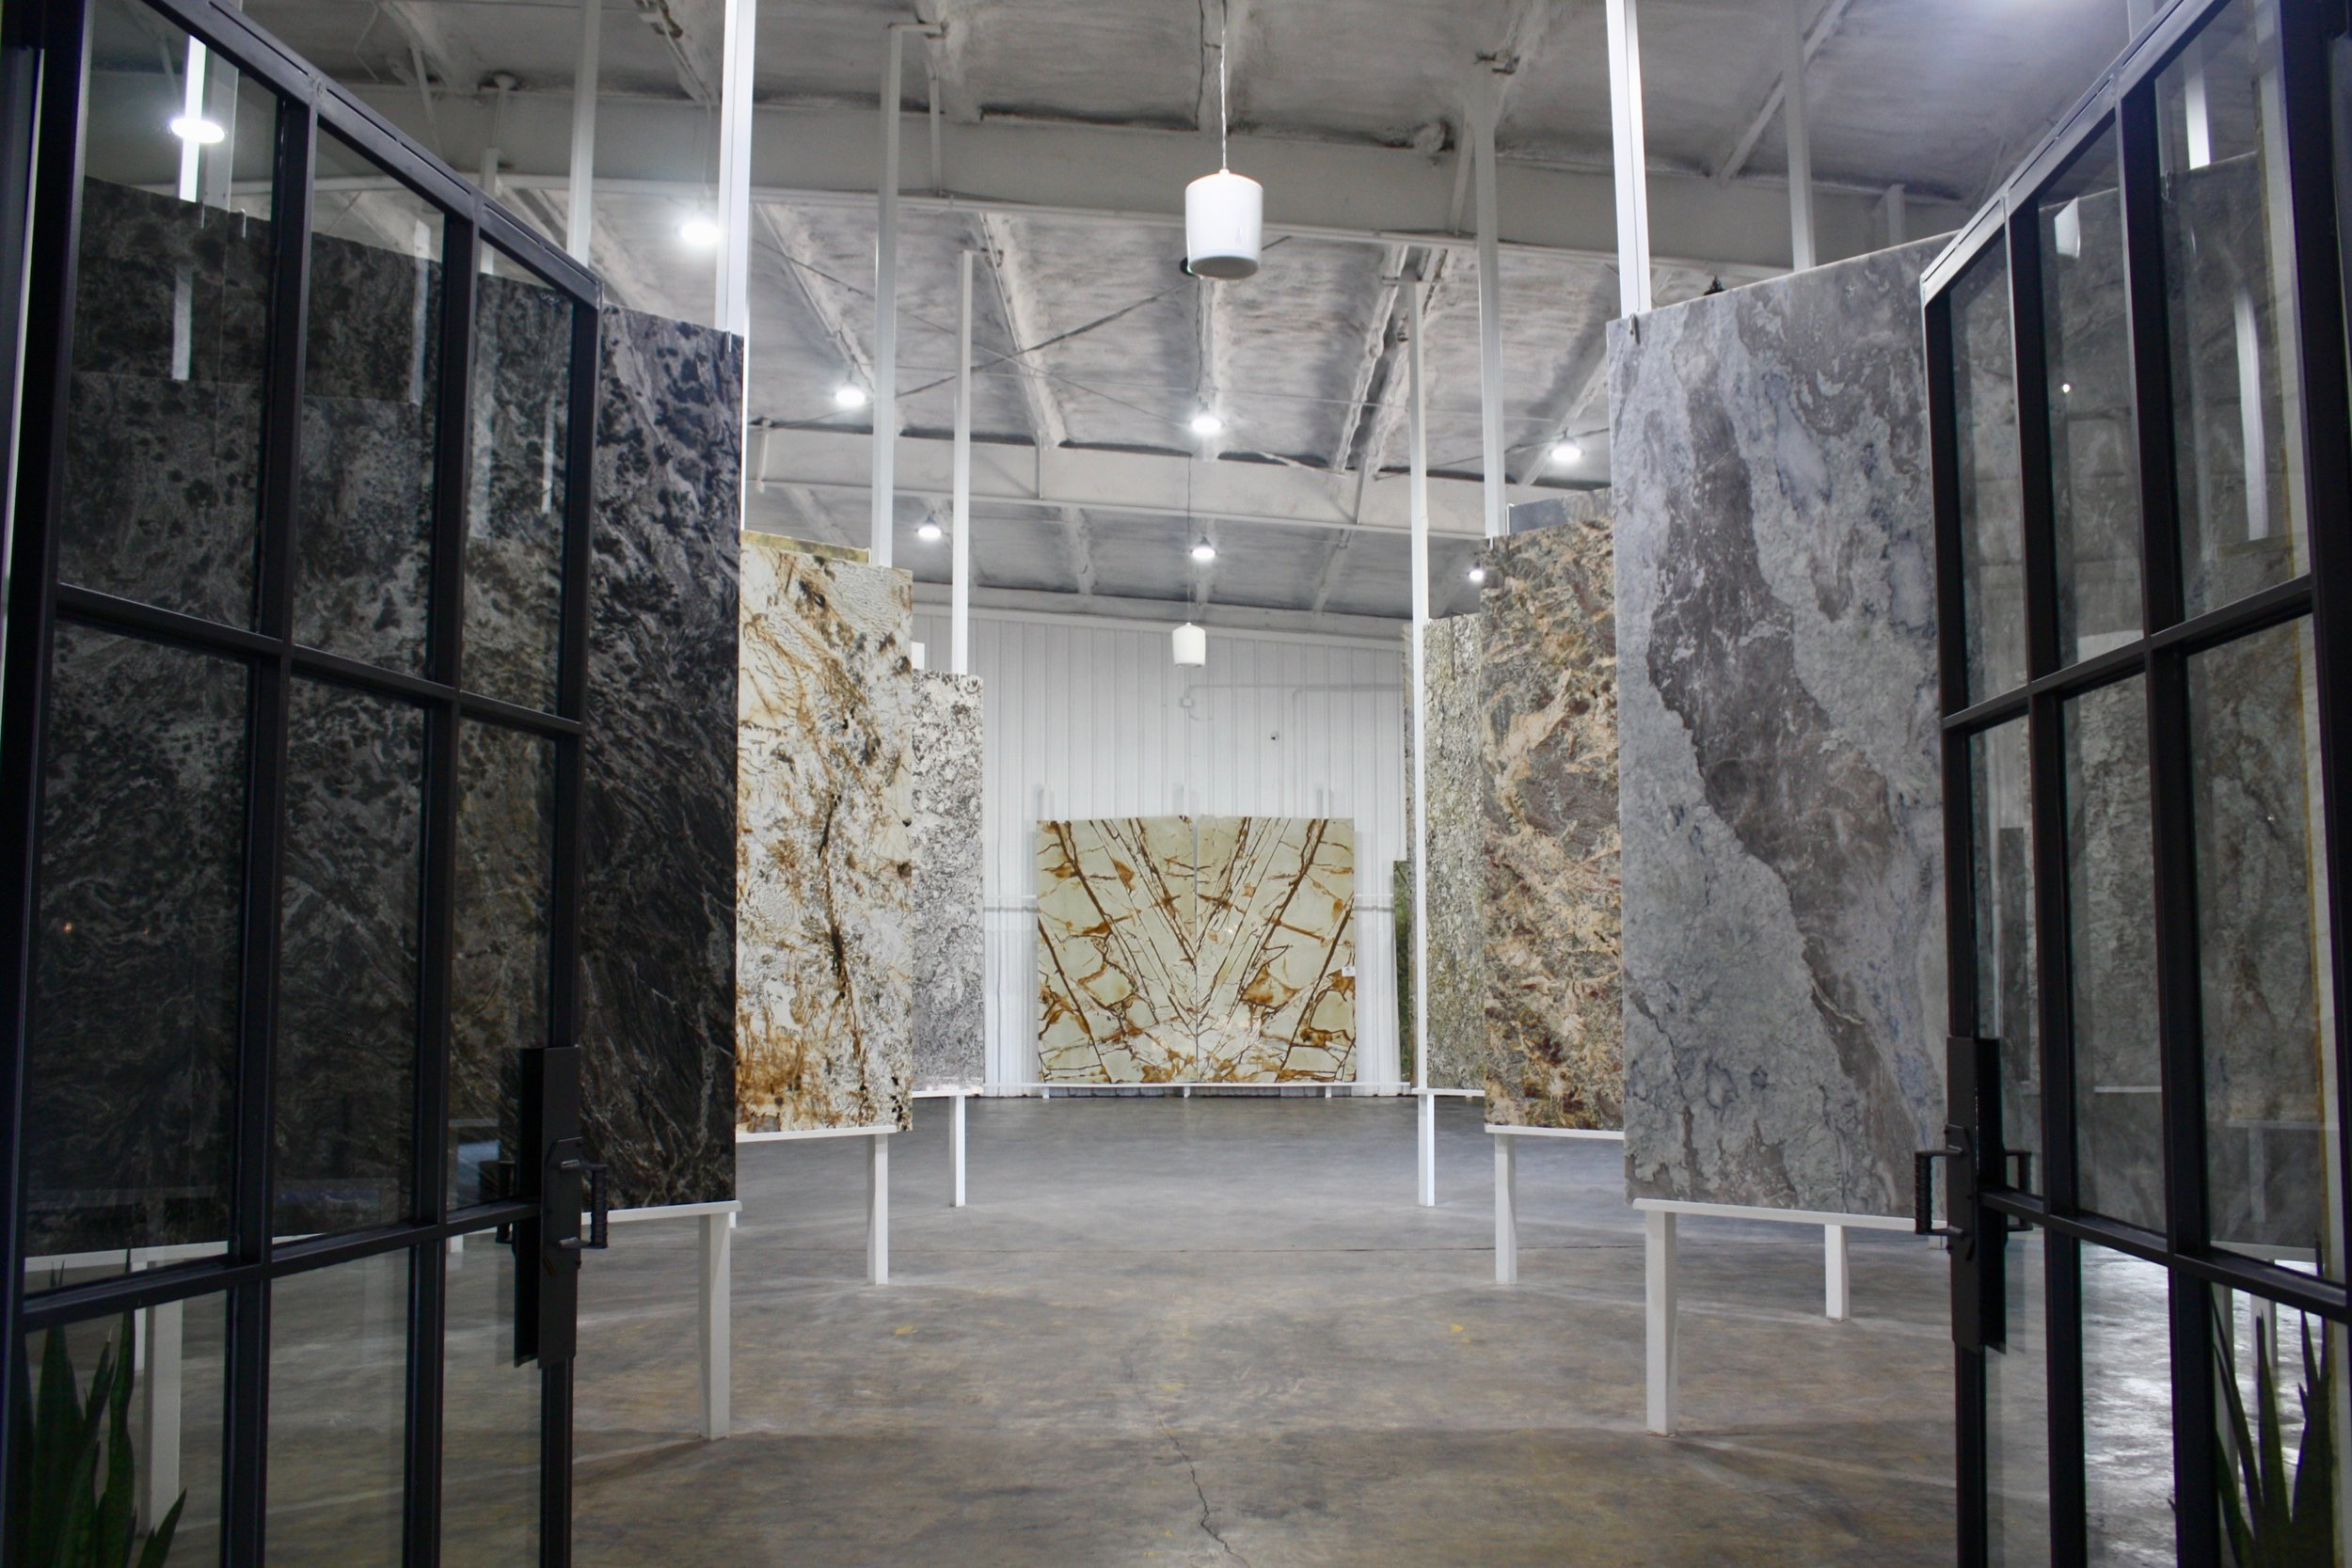 SHOWROOM - Stone Studio by CCI is Texarkana's newest state-of-the-art stone showroom, bringing CCI's 34+ years of experience to a modern, friendly location in downtown Texarkana. Visit our indoor showroom for an inspiring first-hand look at the latest in stone.